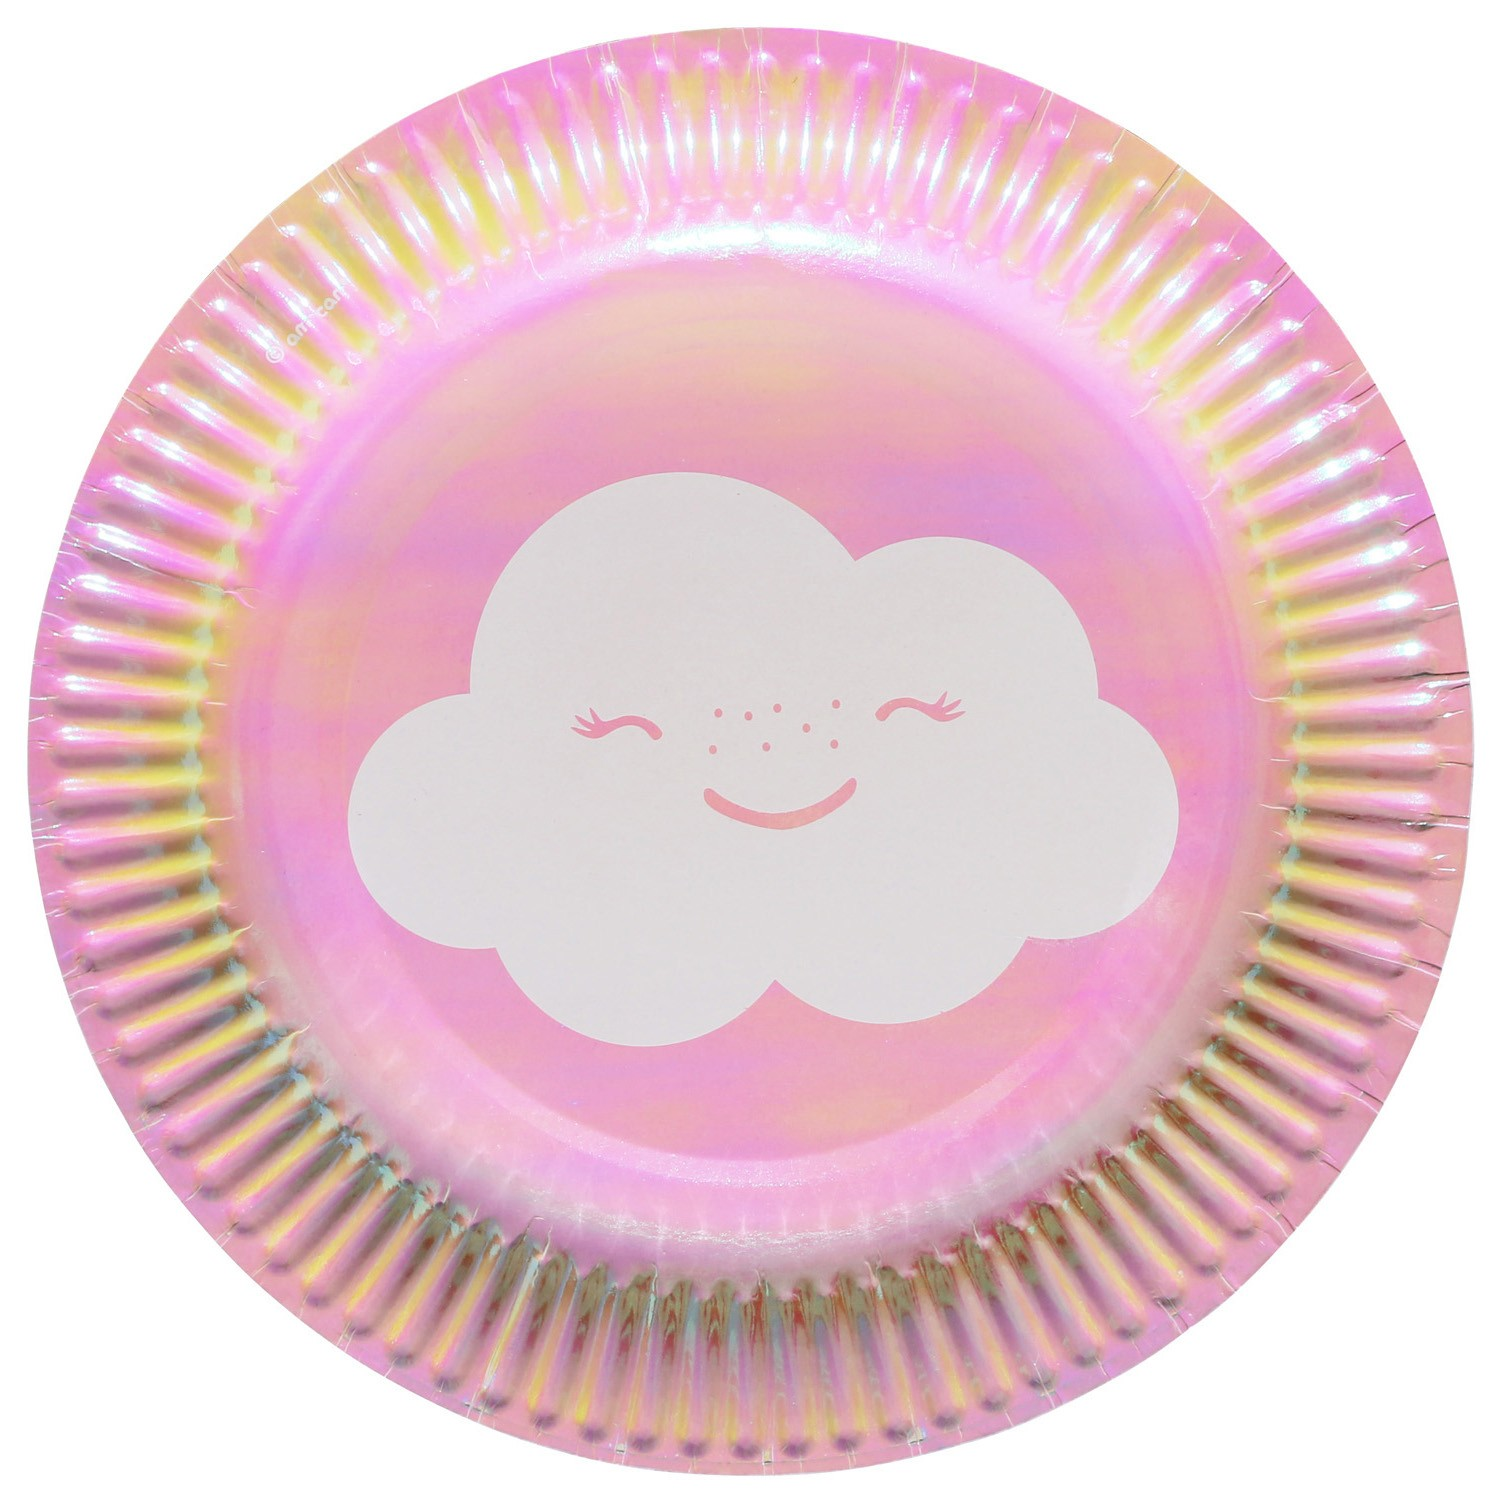 Rainbow & clouds pink plates x8